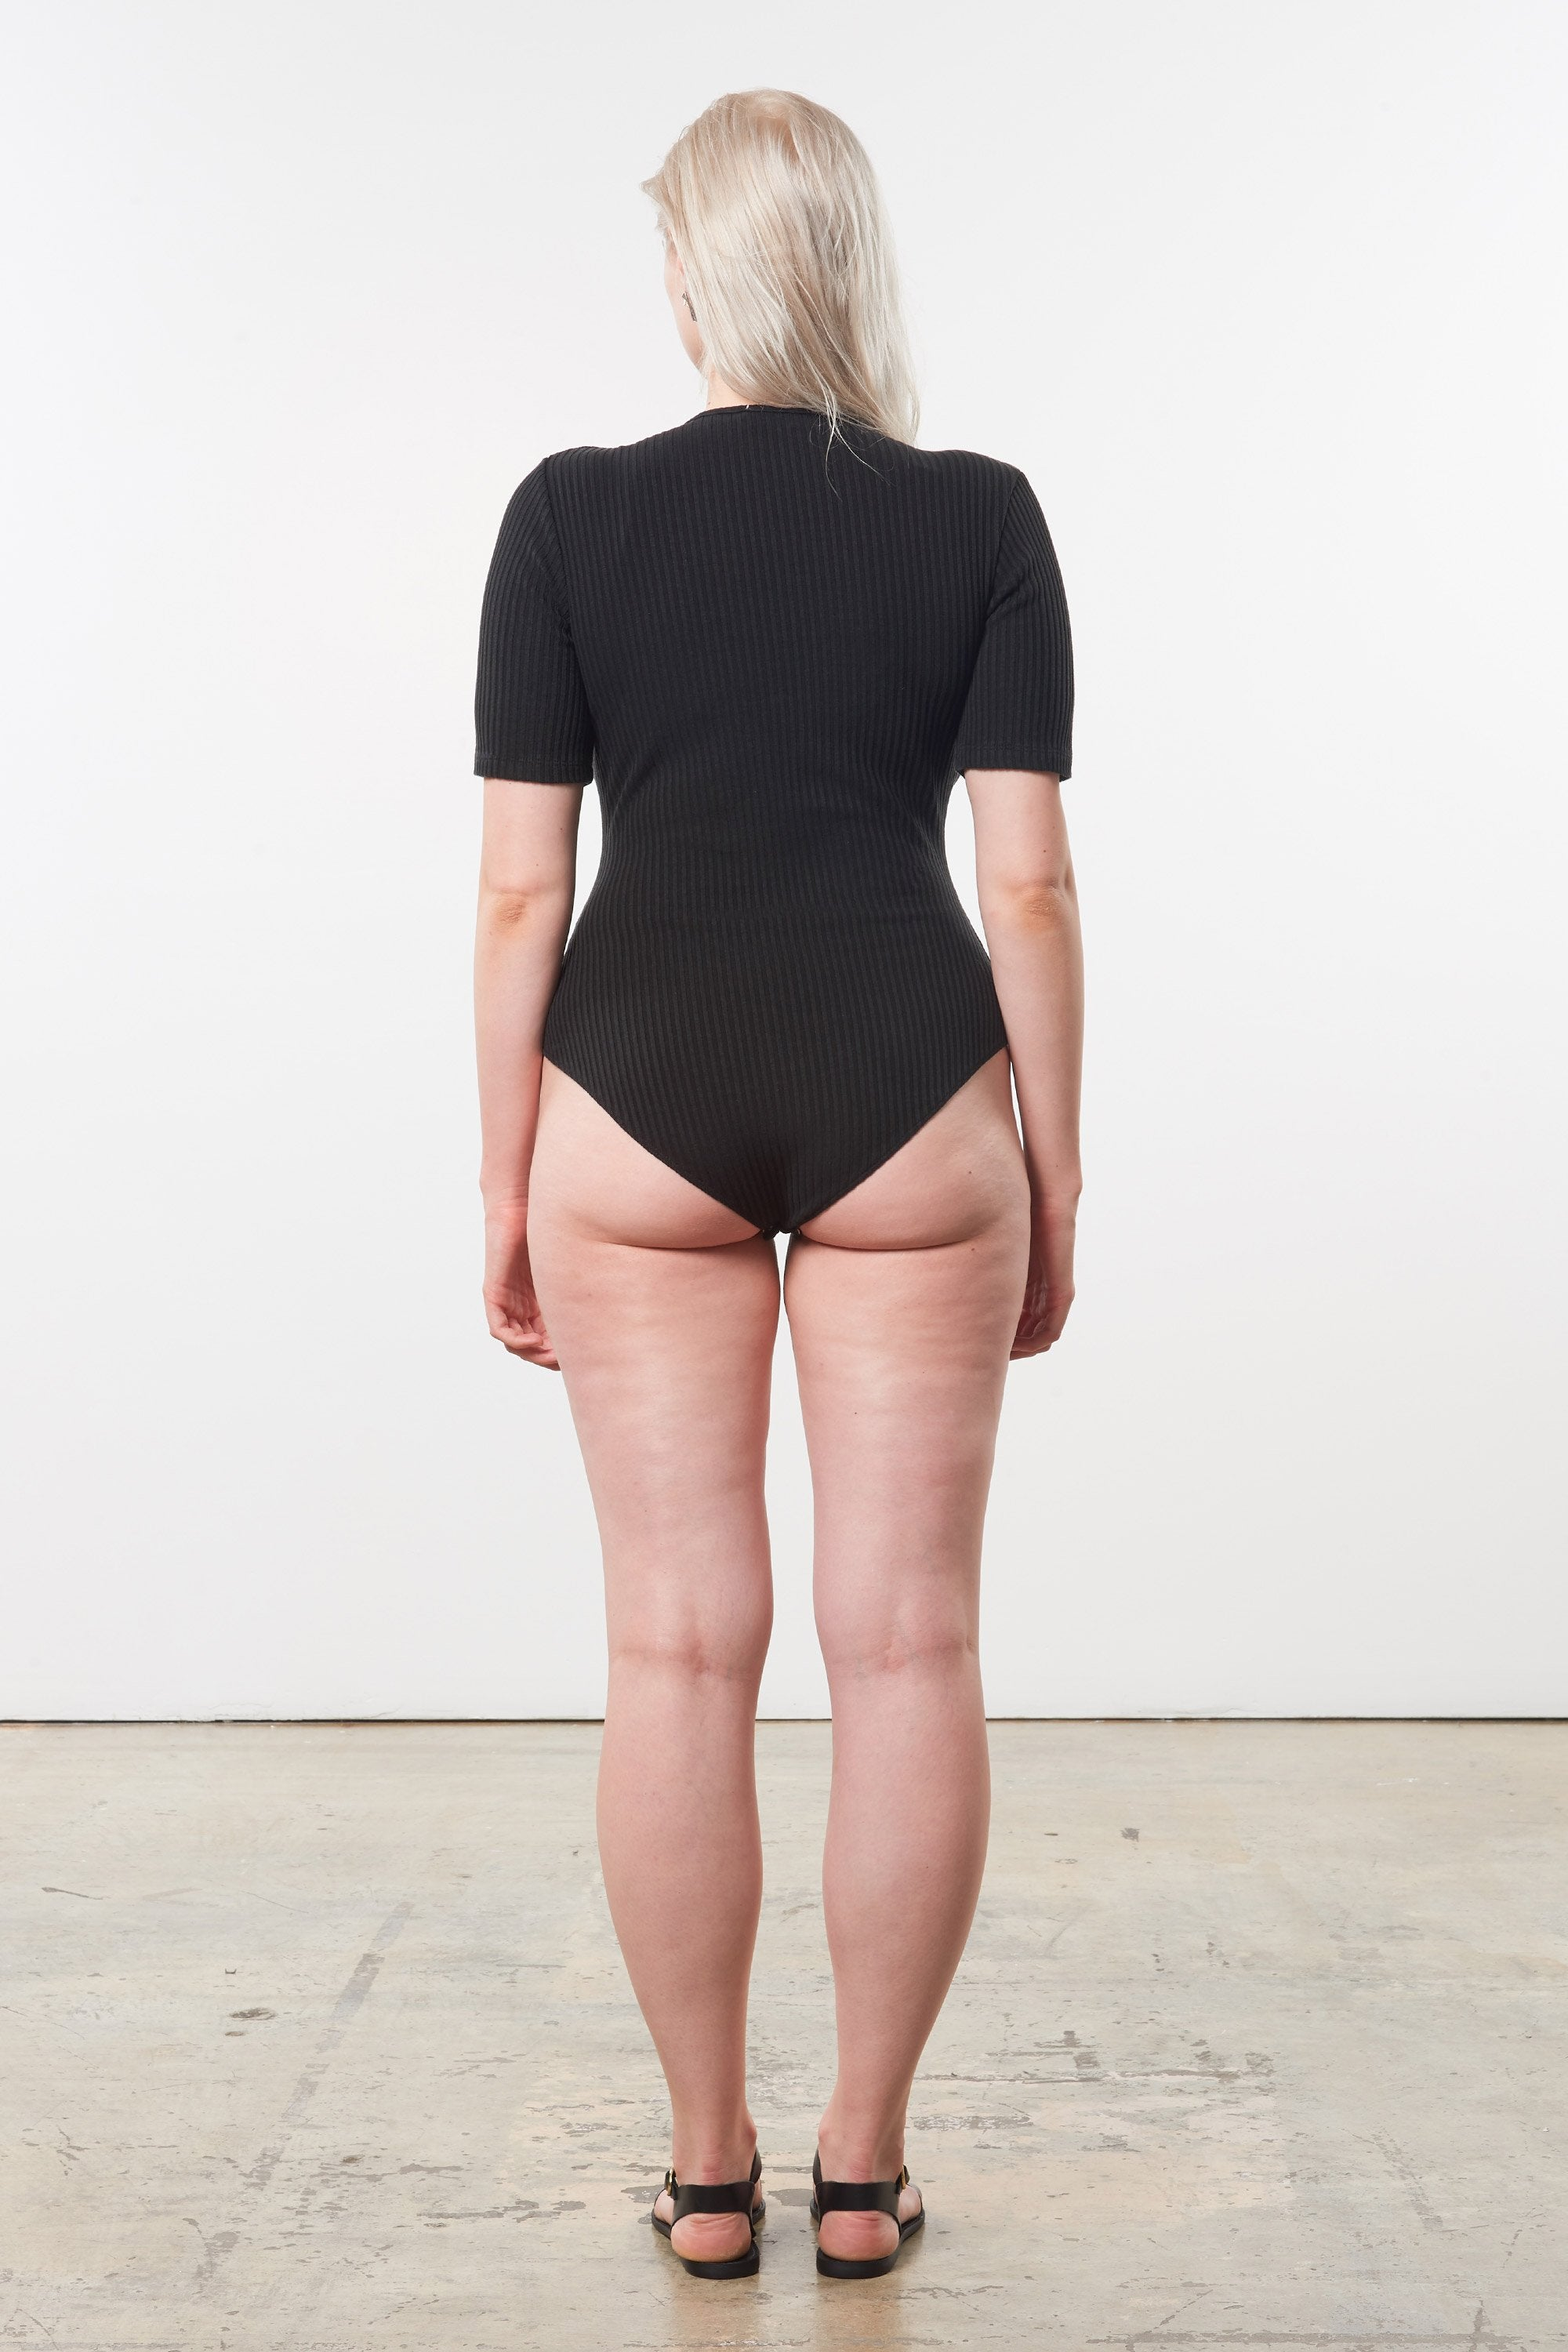 Mara Hoffman Extended Black Arete Bodysuit in Tencel and Refibra (back)